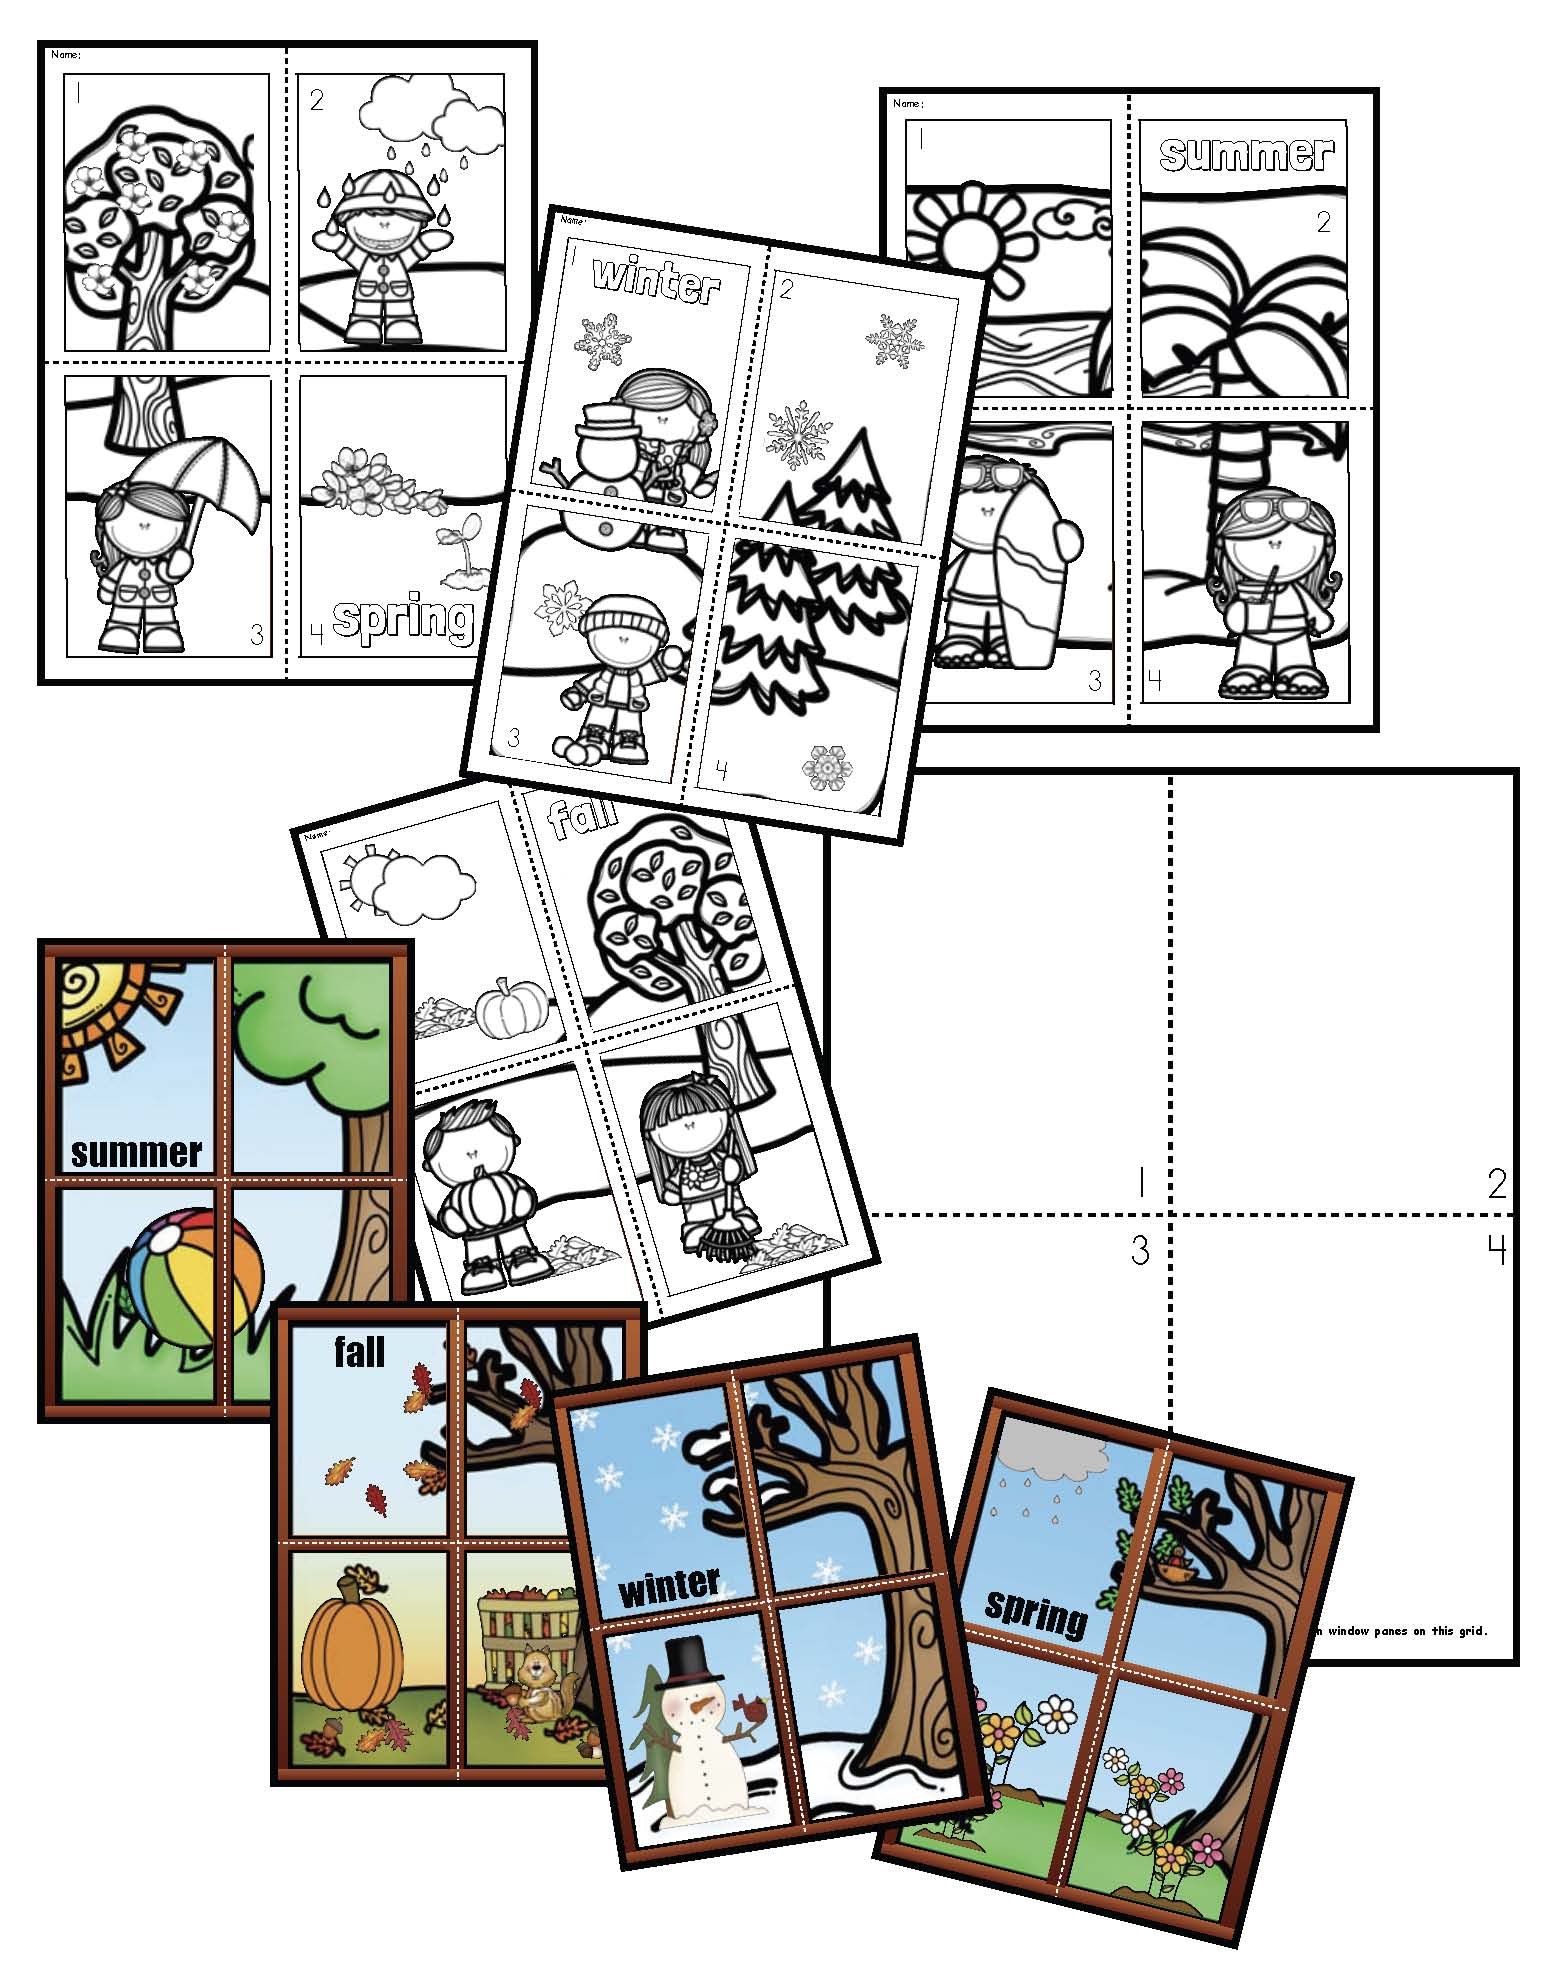 4 seasons games, 4 seasons crafts, 4 seasons activities, 4 seasons puzzles, 4 seasons centers